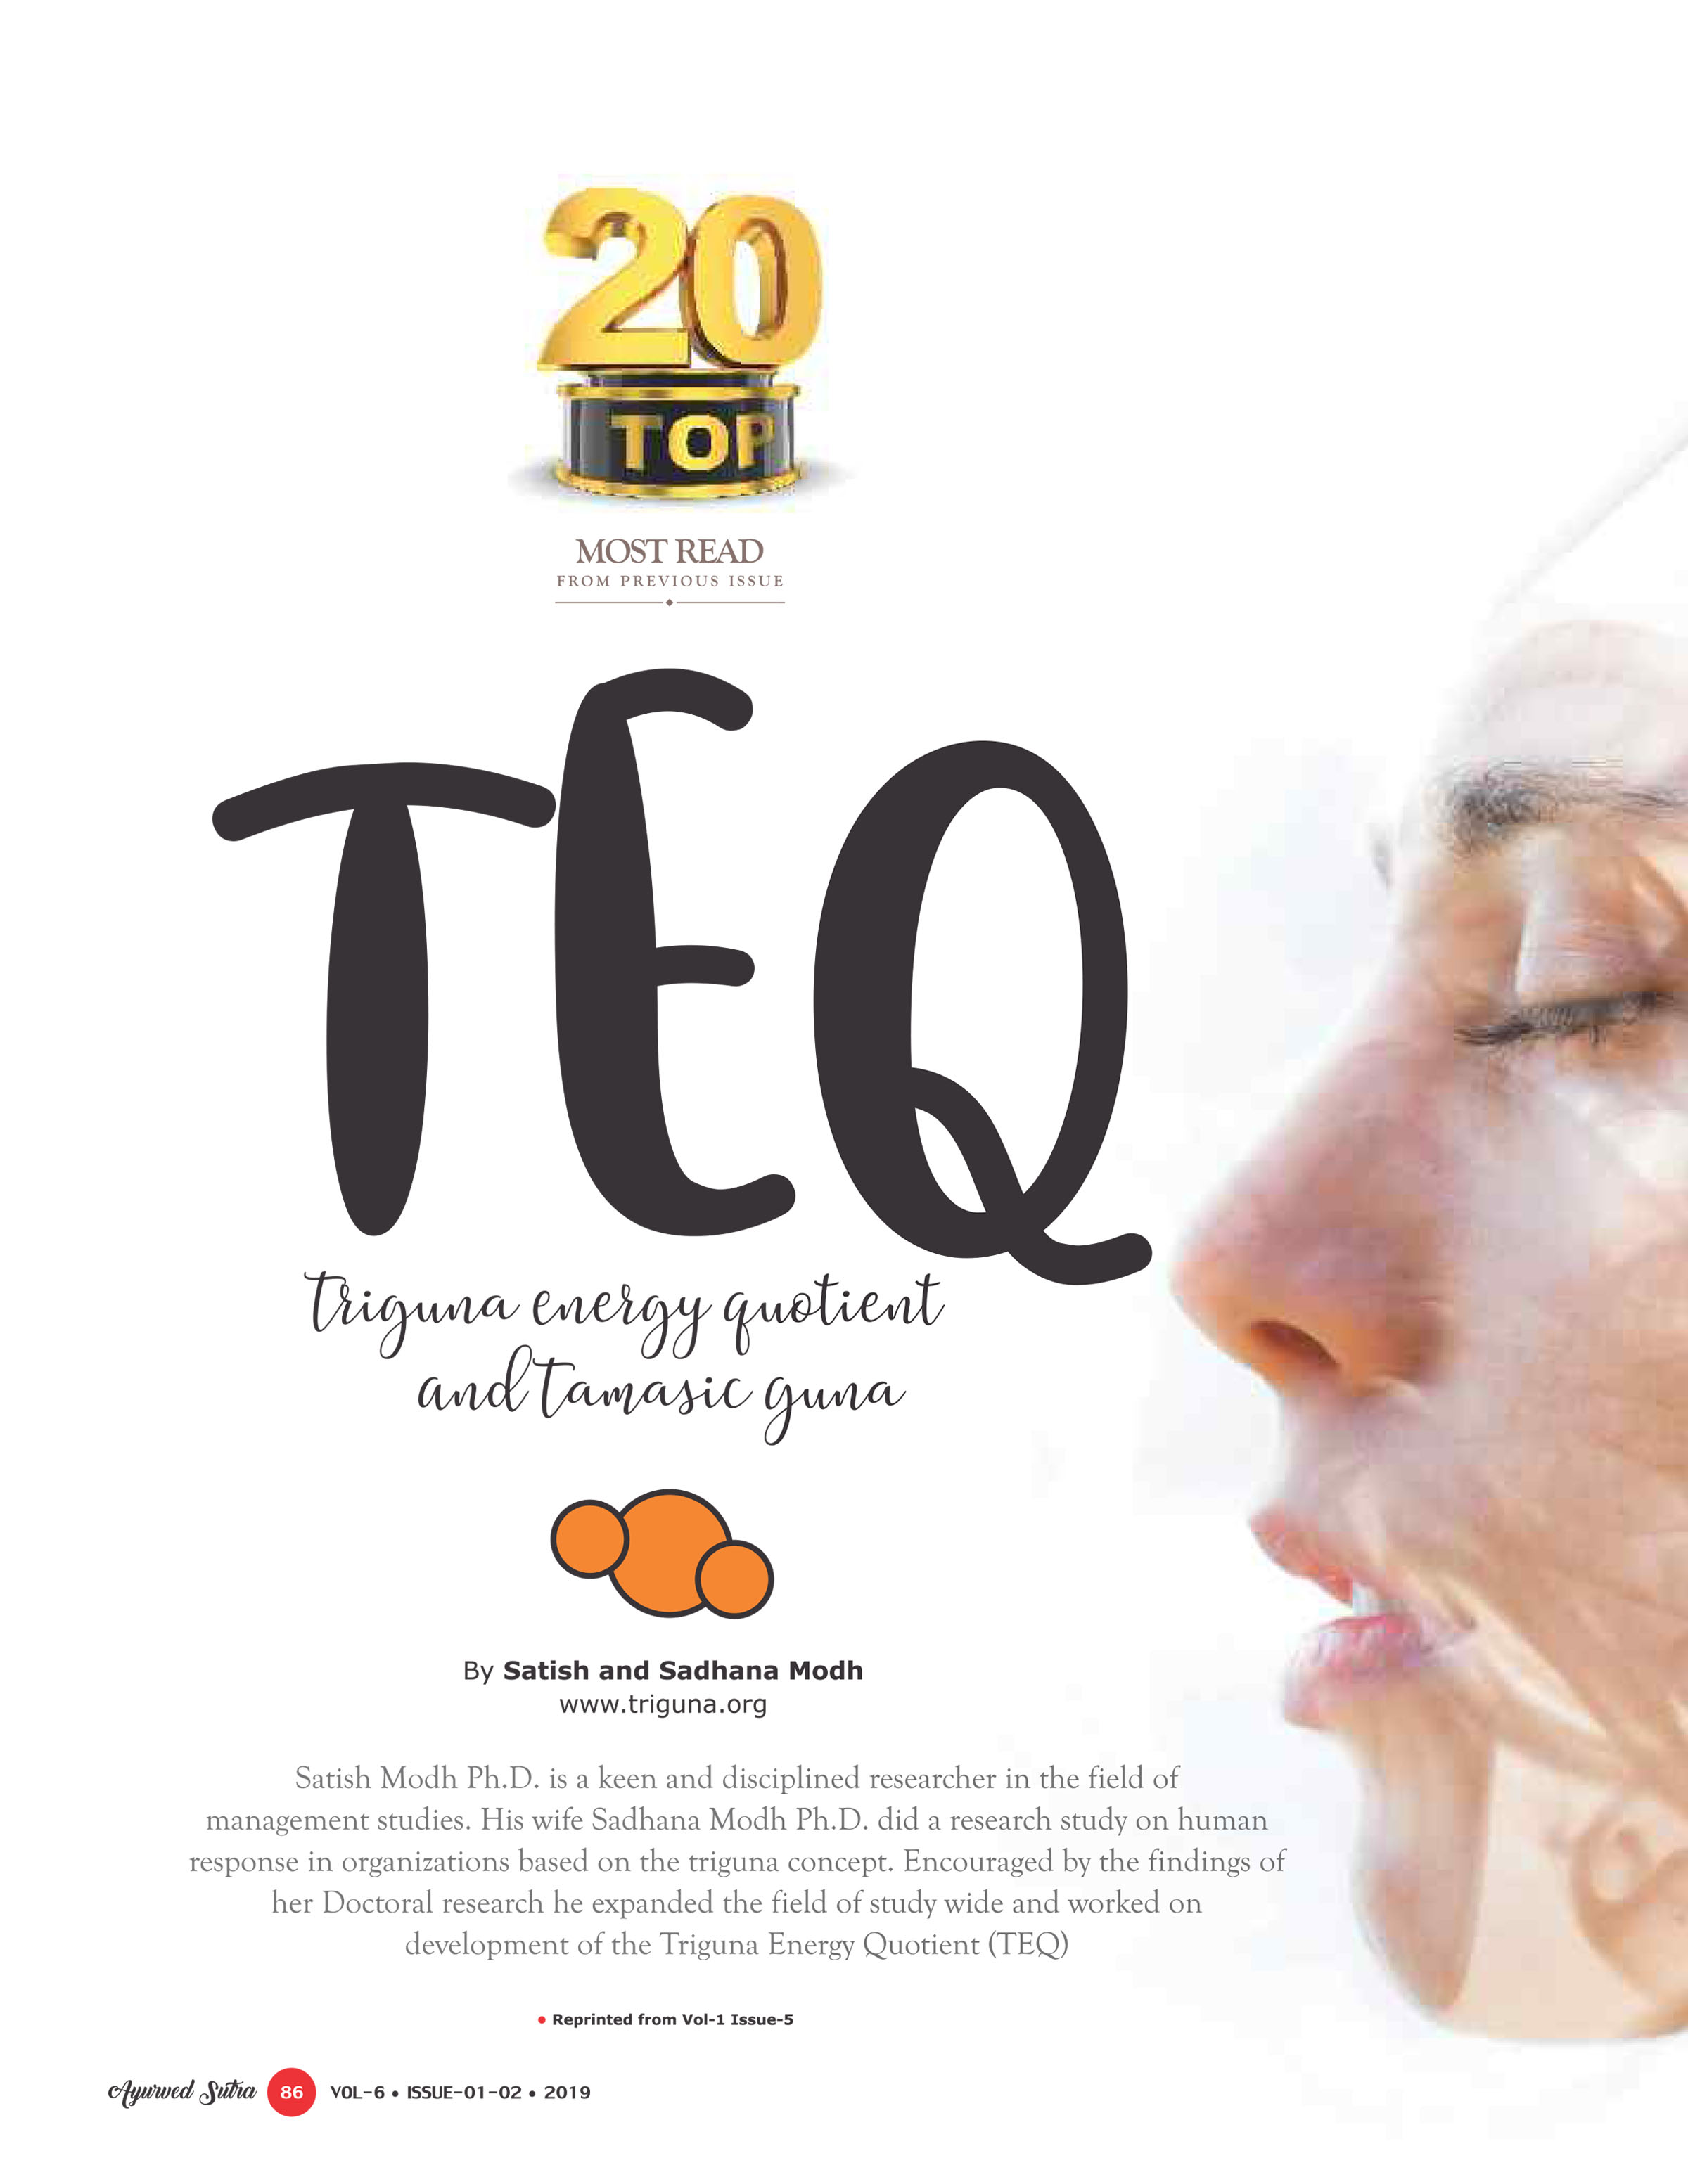 Ayurvedsutra Vol 06 issue 01 02 88 - TEQ Triguna Energy Quotient and tamasic guna